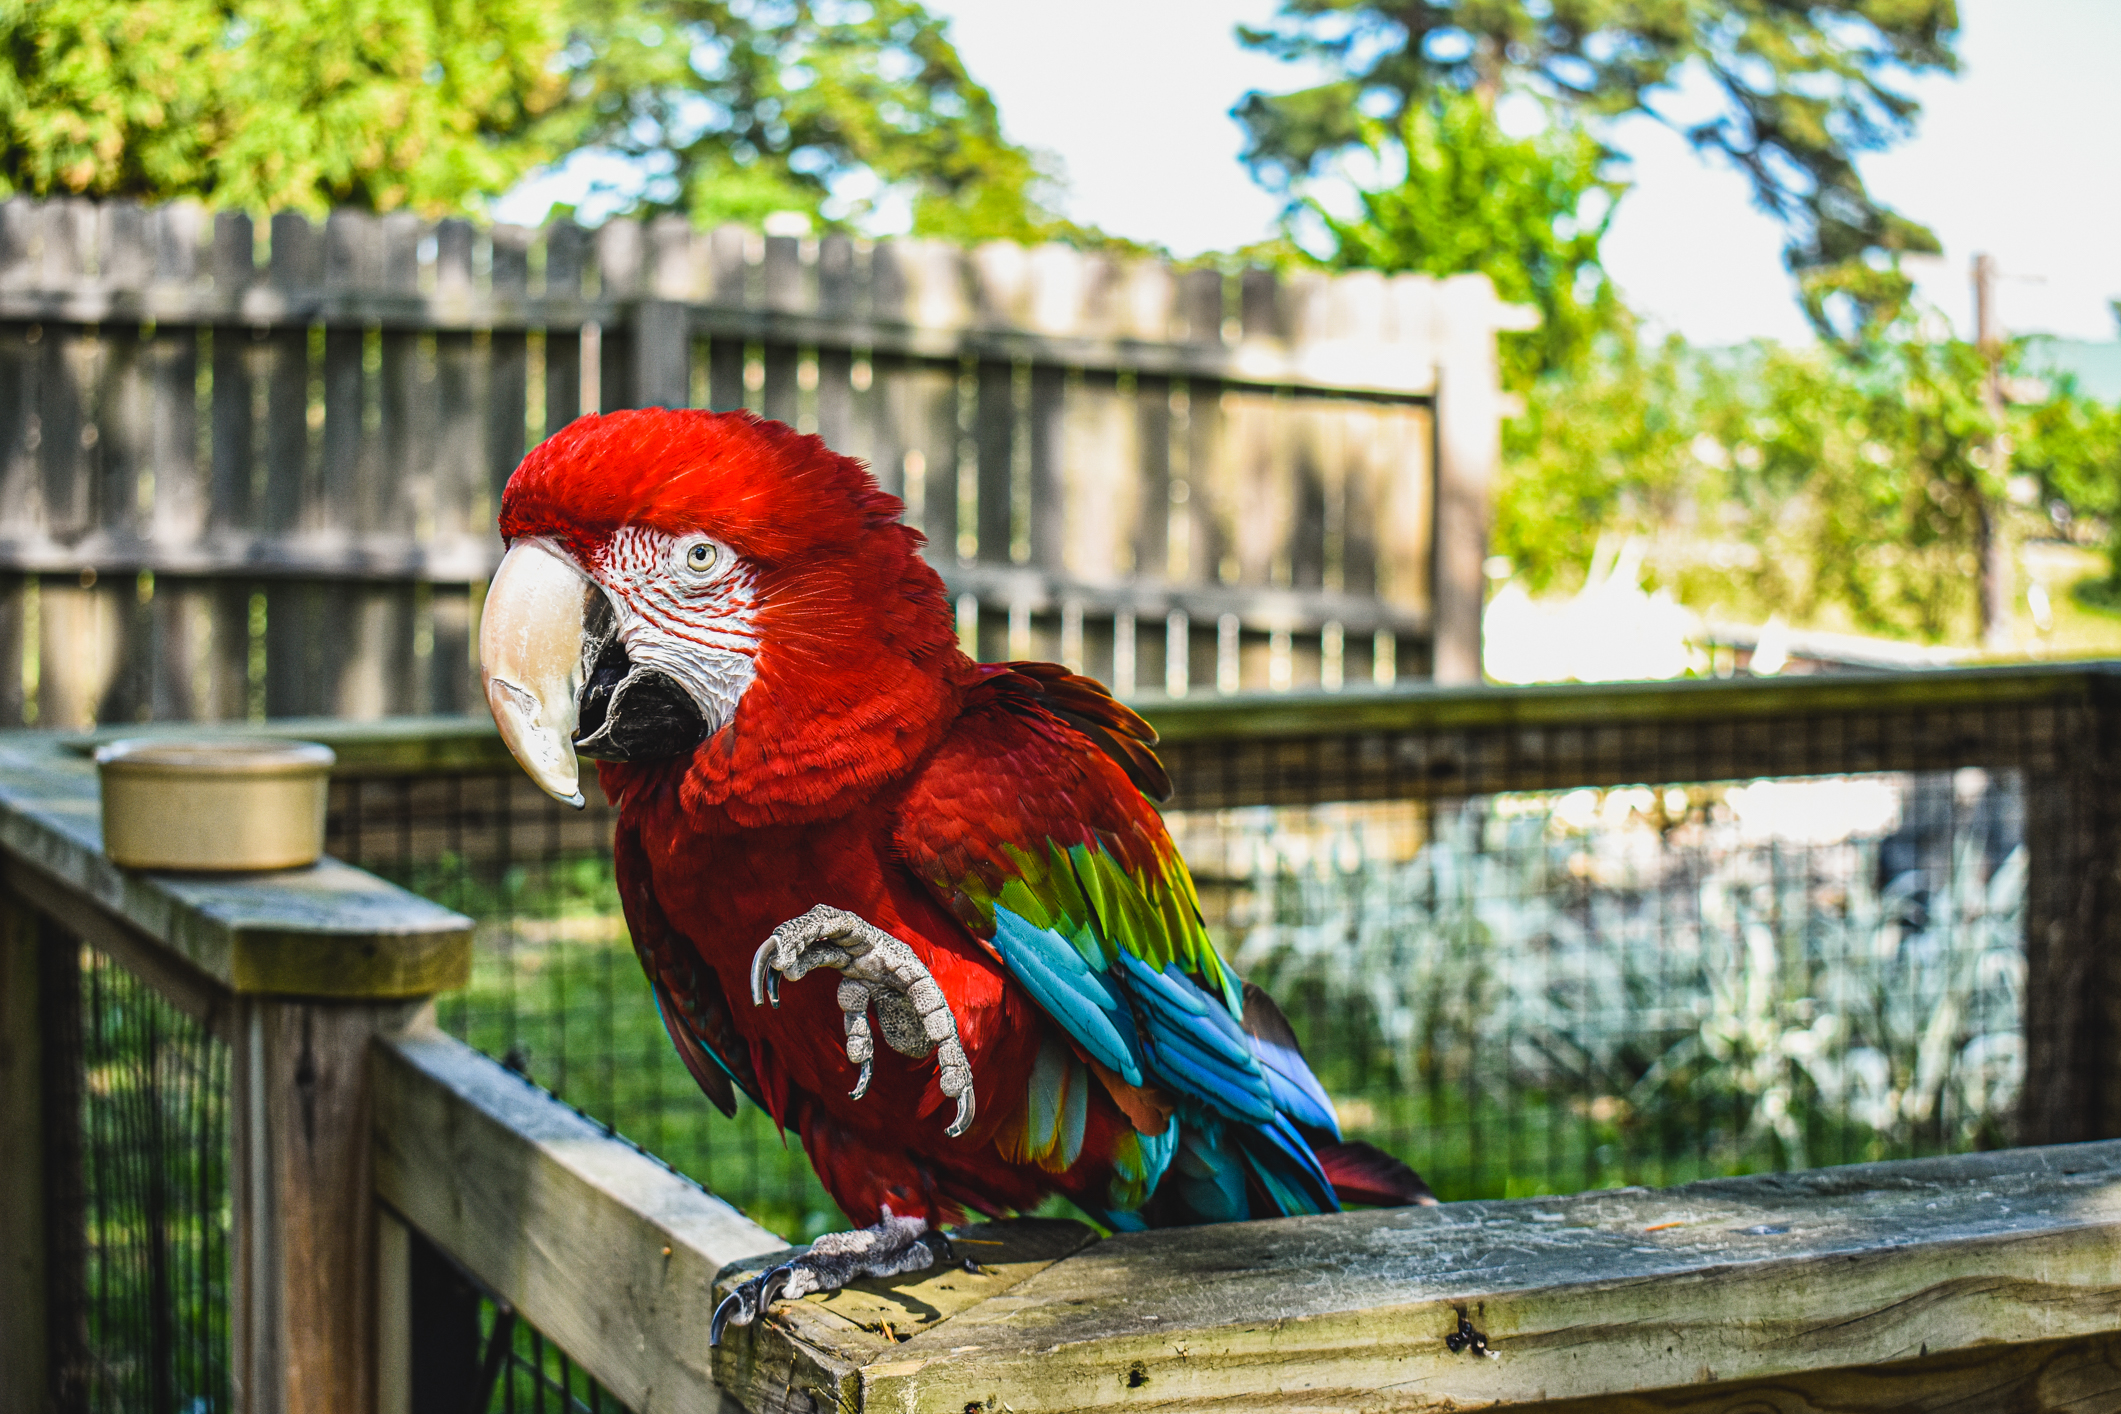 macaw standing on one foot